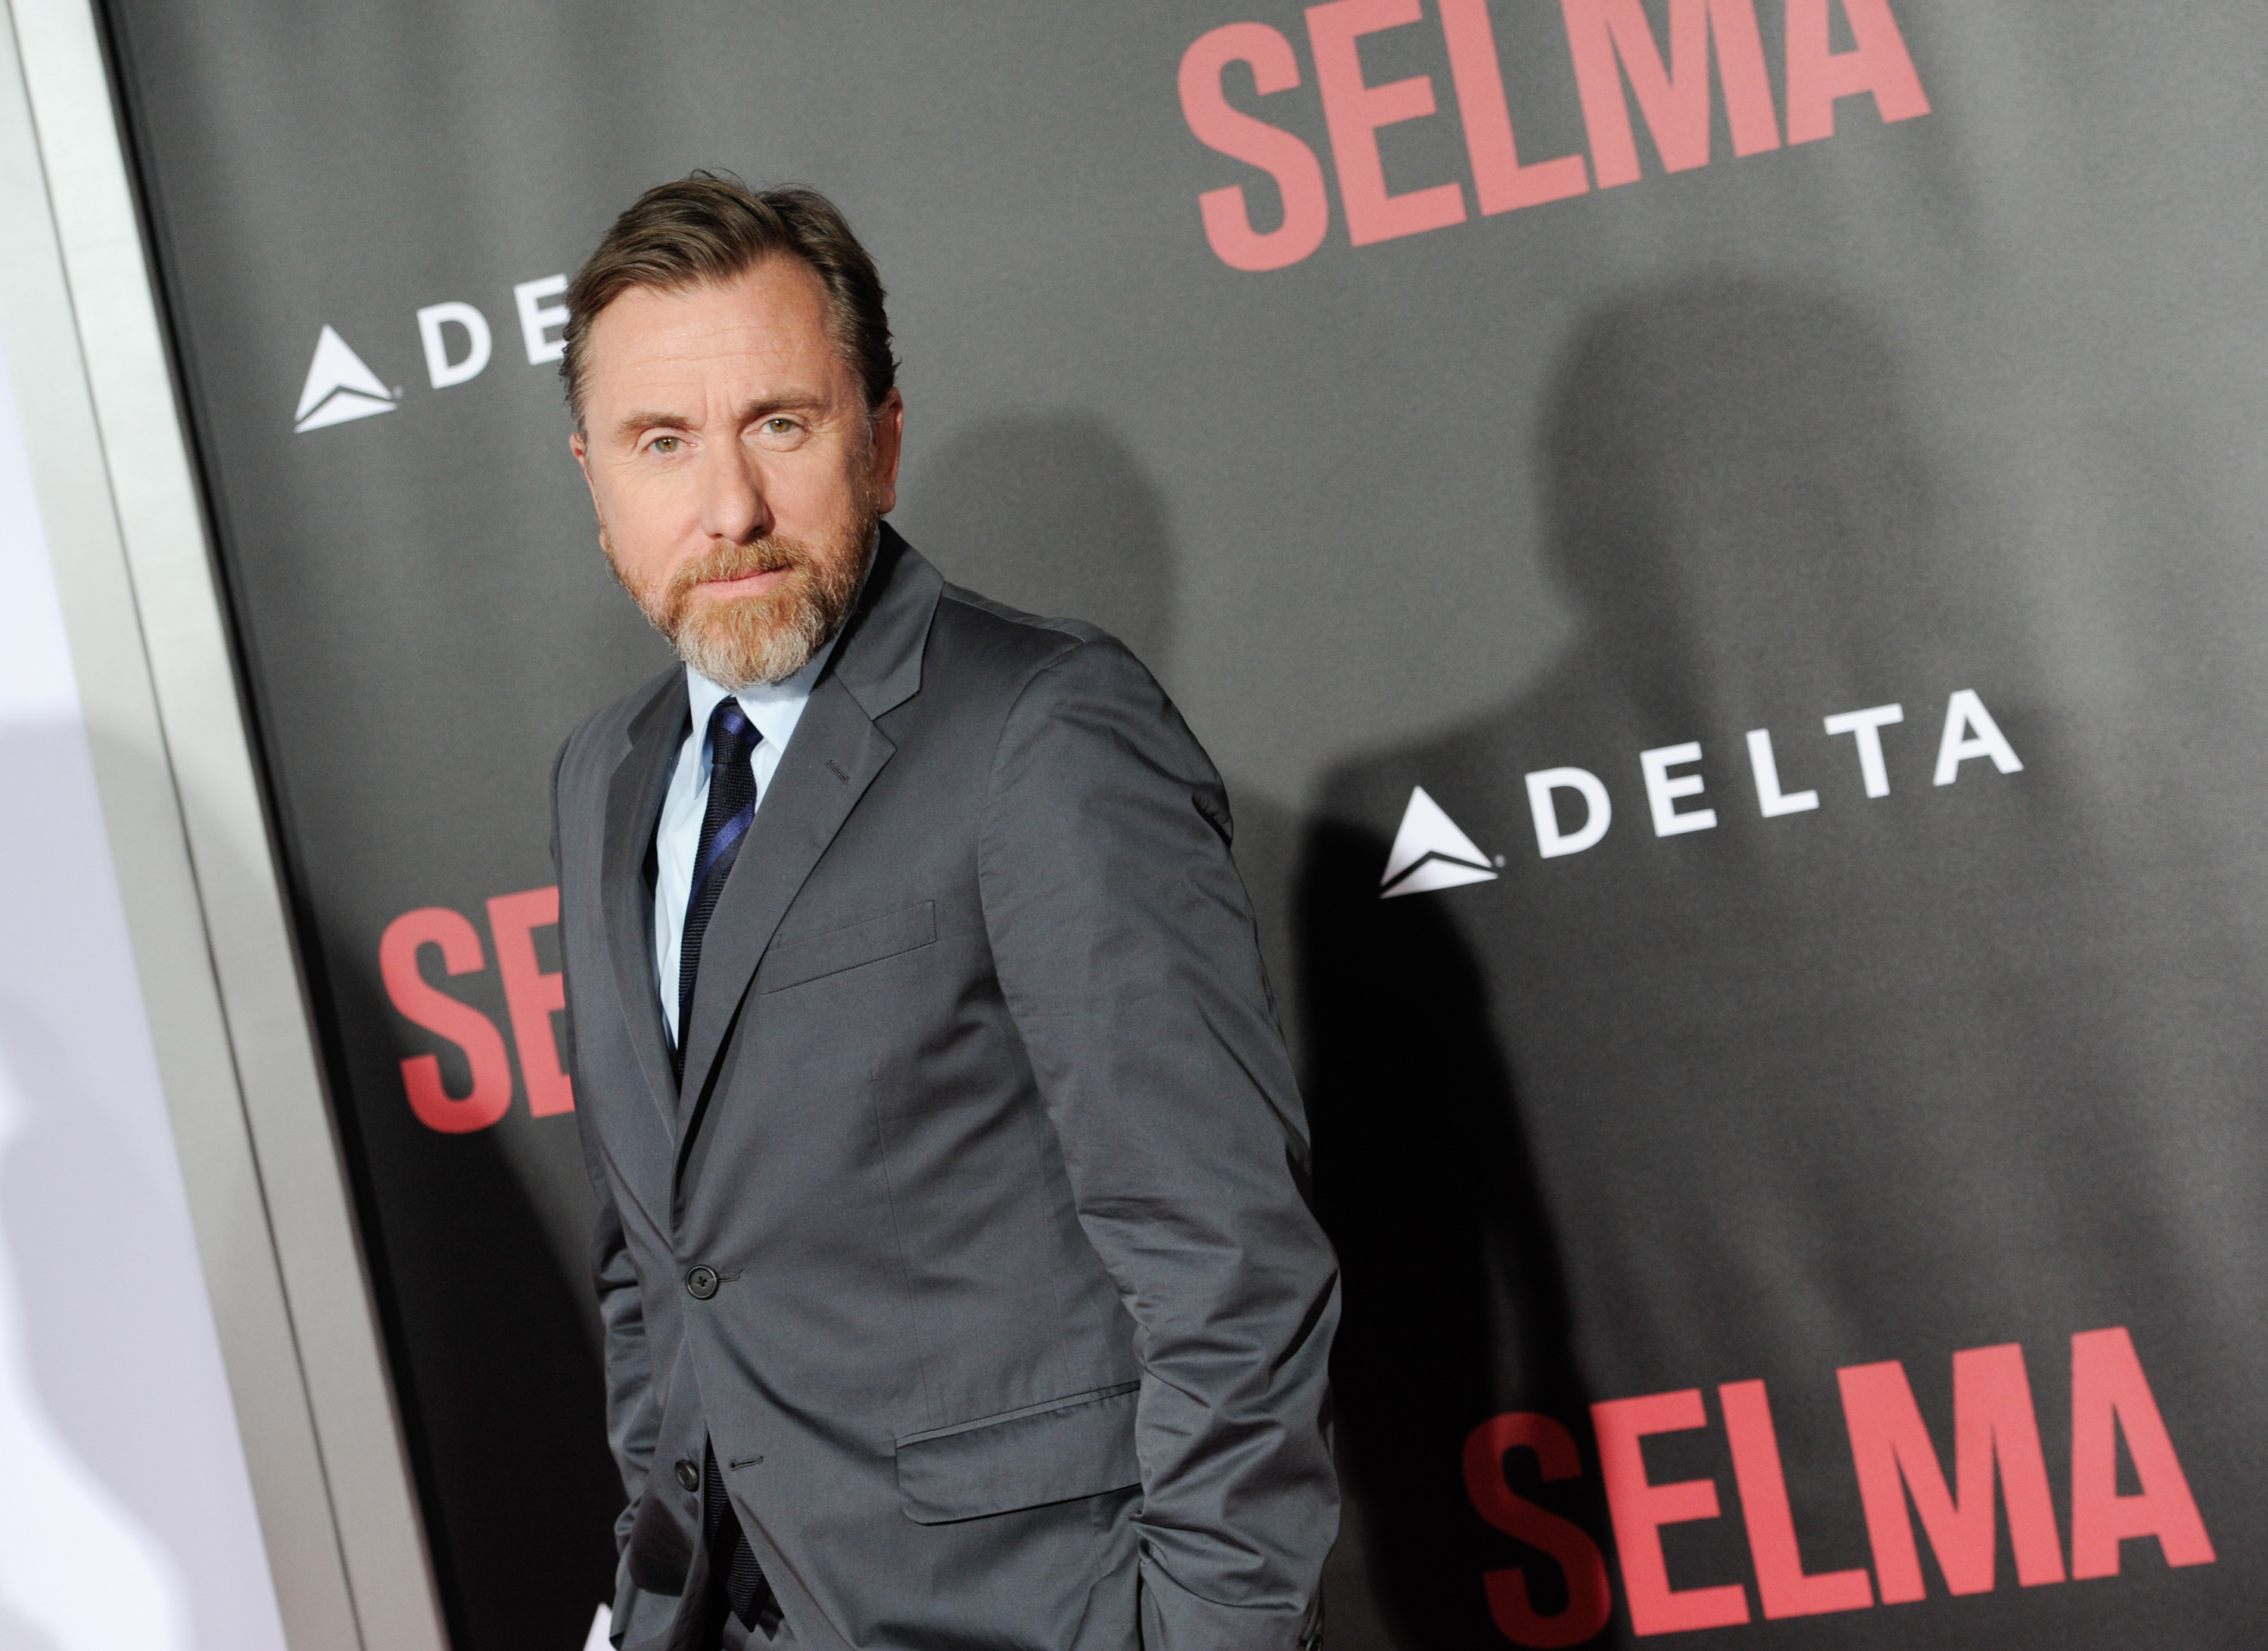 Actor Tim Roth attends the premiere of 'Selma' at the Ziegfeld Theatre on Sunday, Dec. 14, 2014, in New York. (Photo by Evan